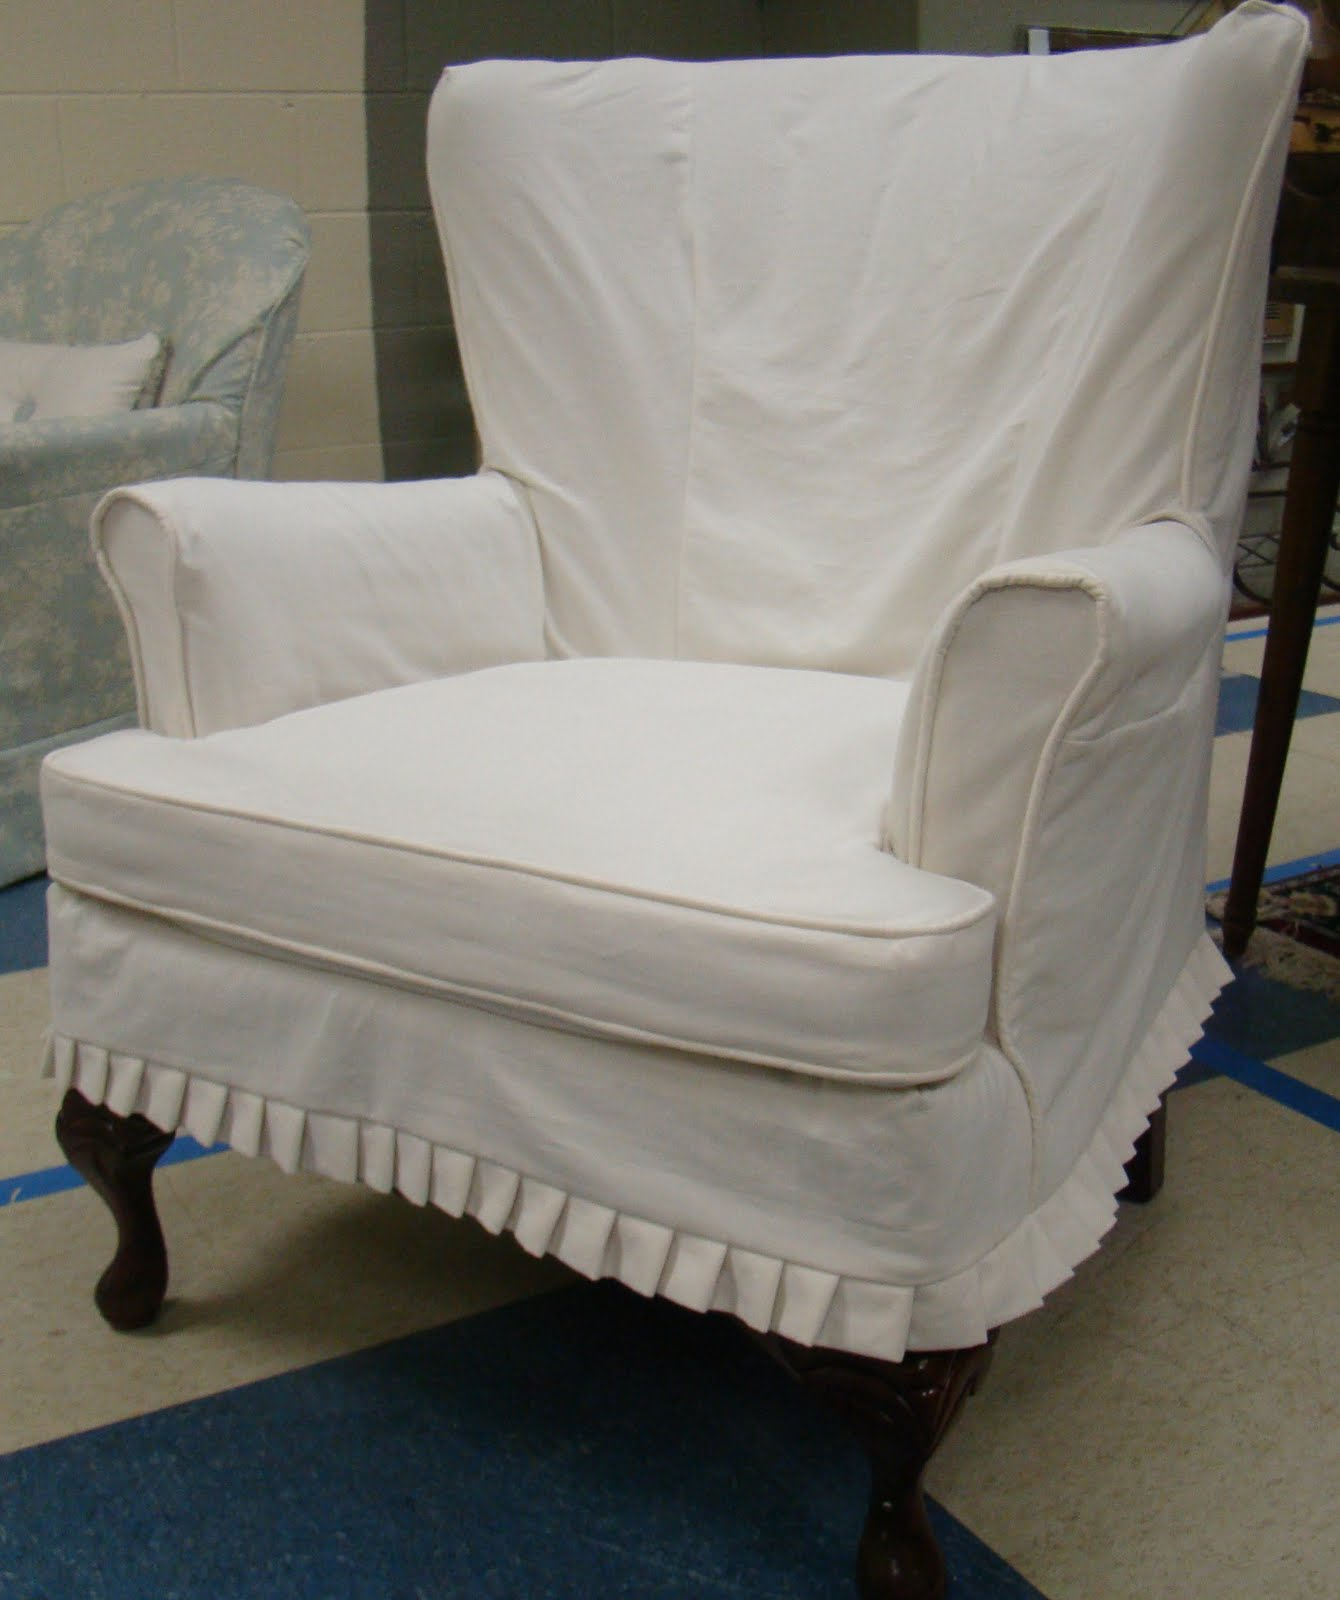 Wingback Chair Slipcover | Oversized Chair Slipcover | Waterproof Couch Cover